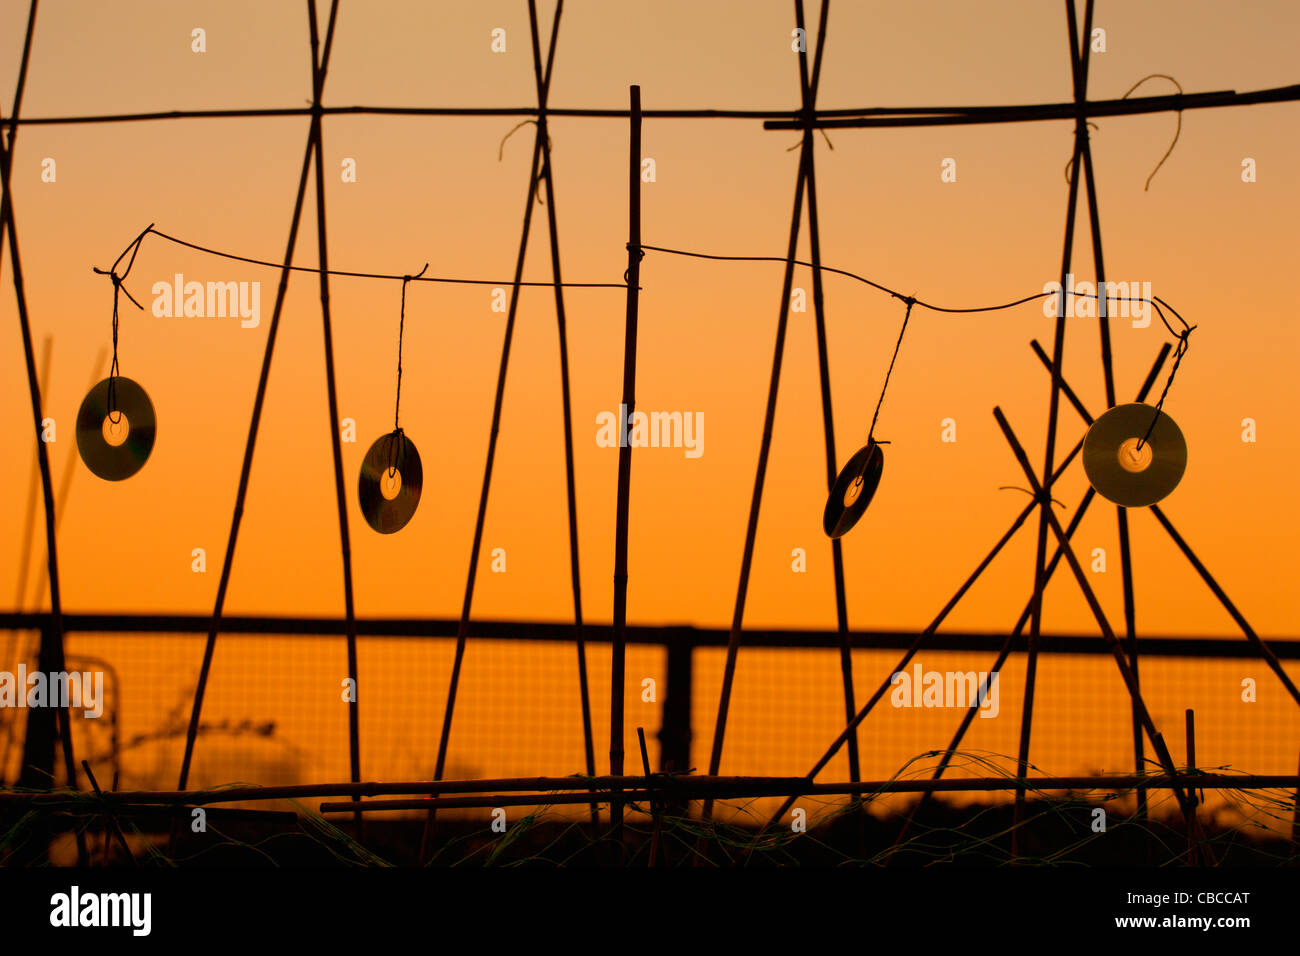 Orange sunset silhouette, bird scarer, four music CD's, blowing in the wind, hanging from bamboo garden canes - Stock Image